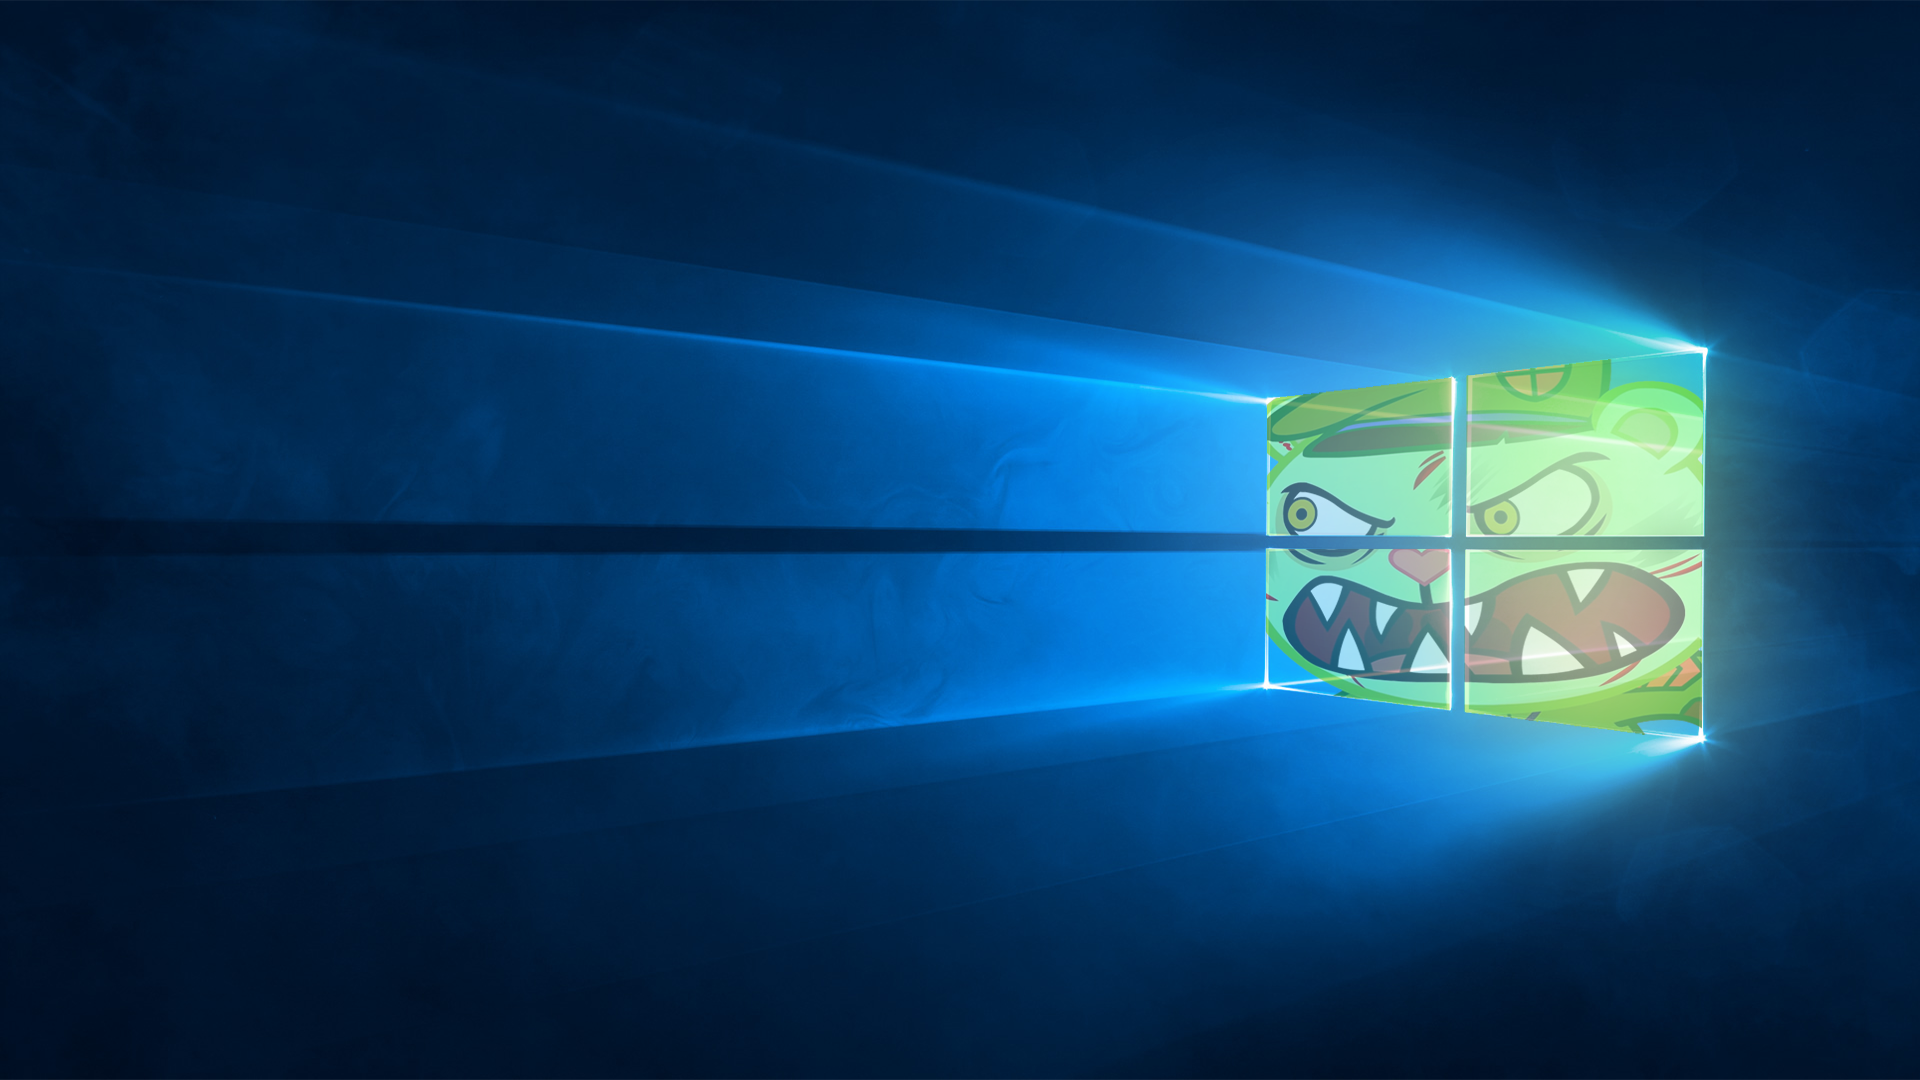 Windows 10 Fliqpy Edition Wallpaper by Xtianzarts